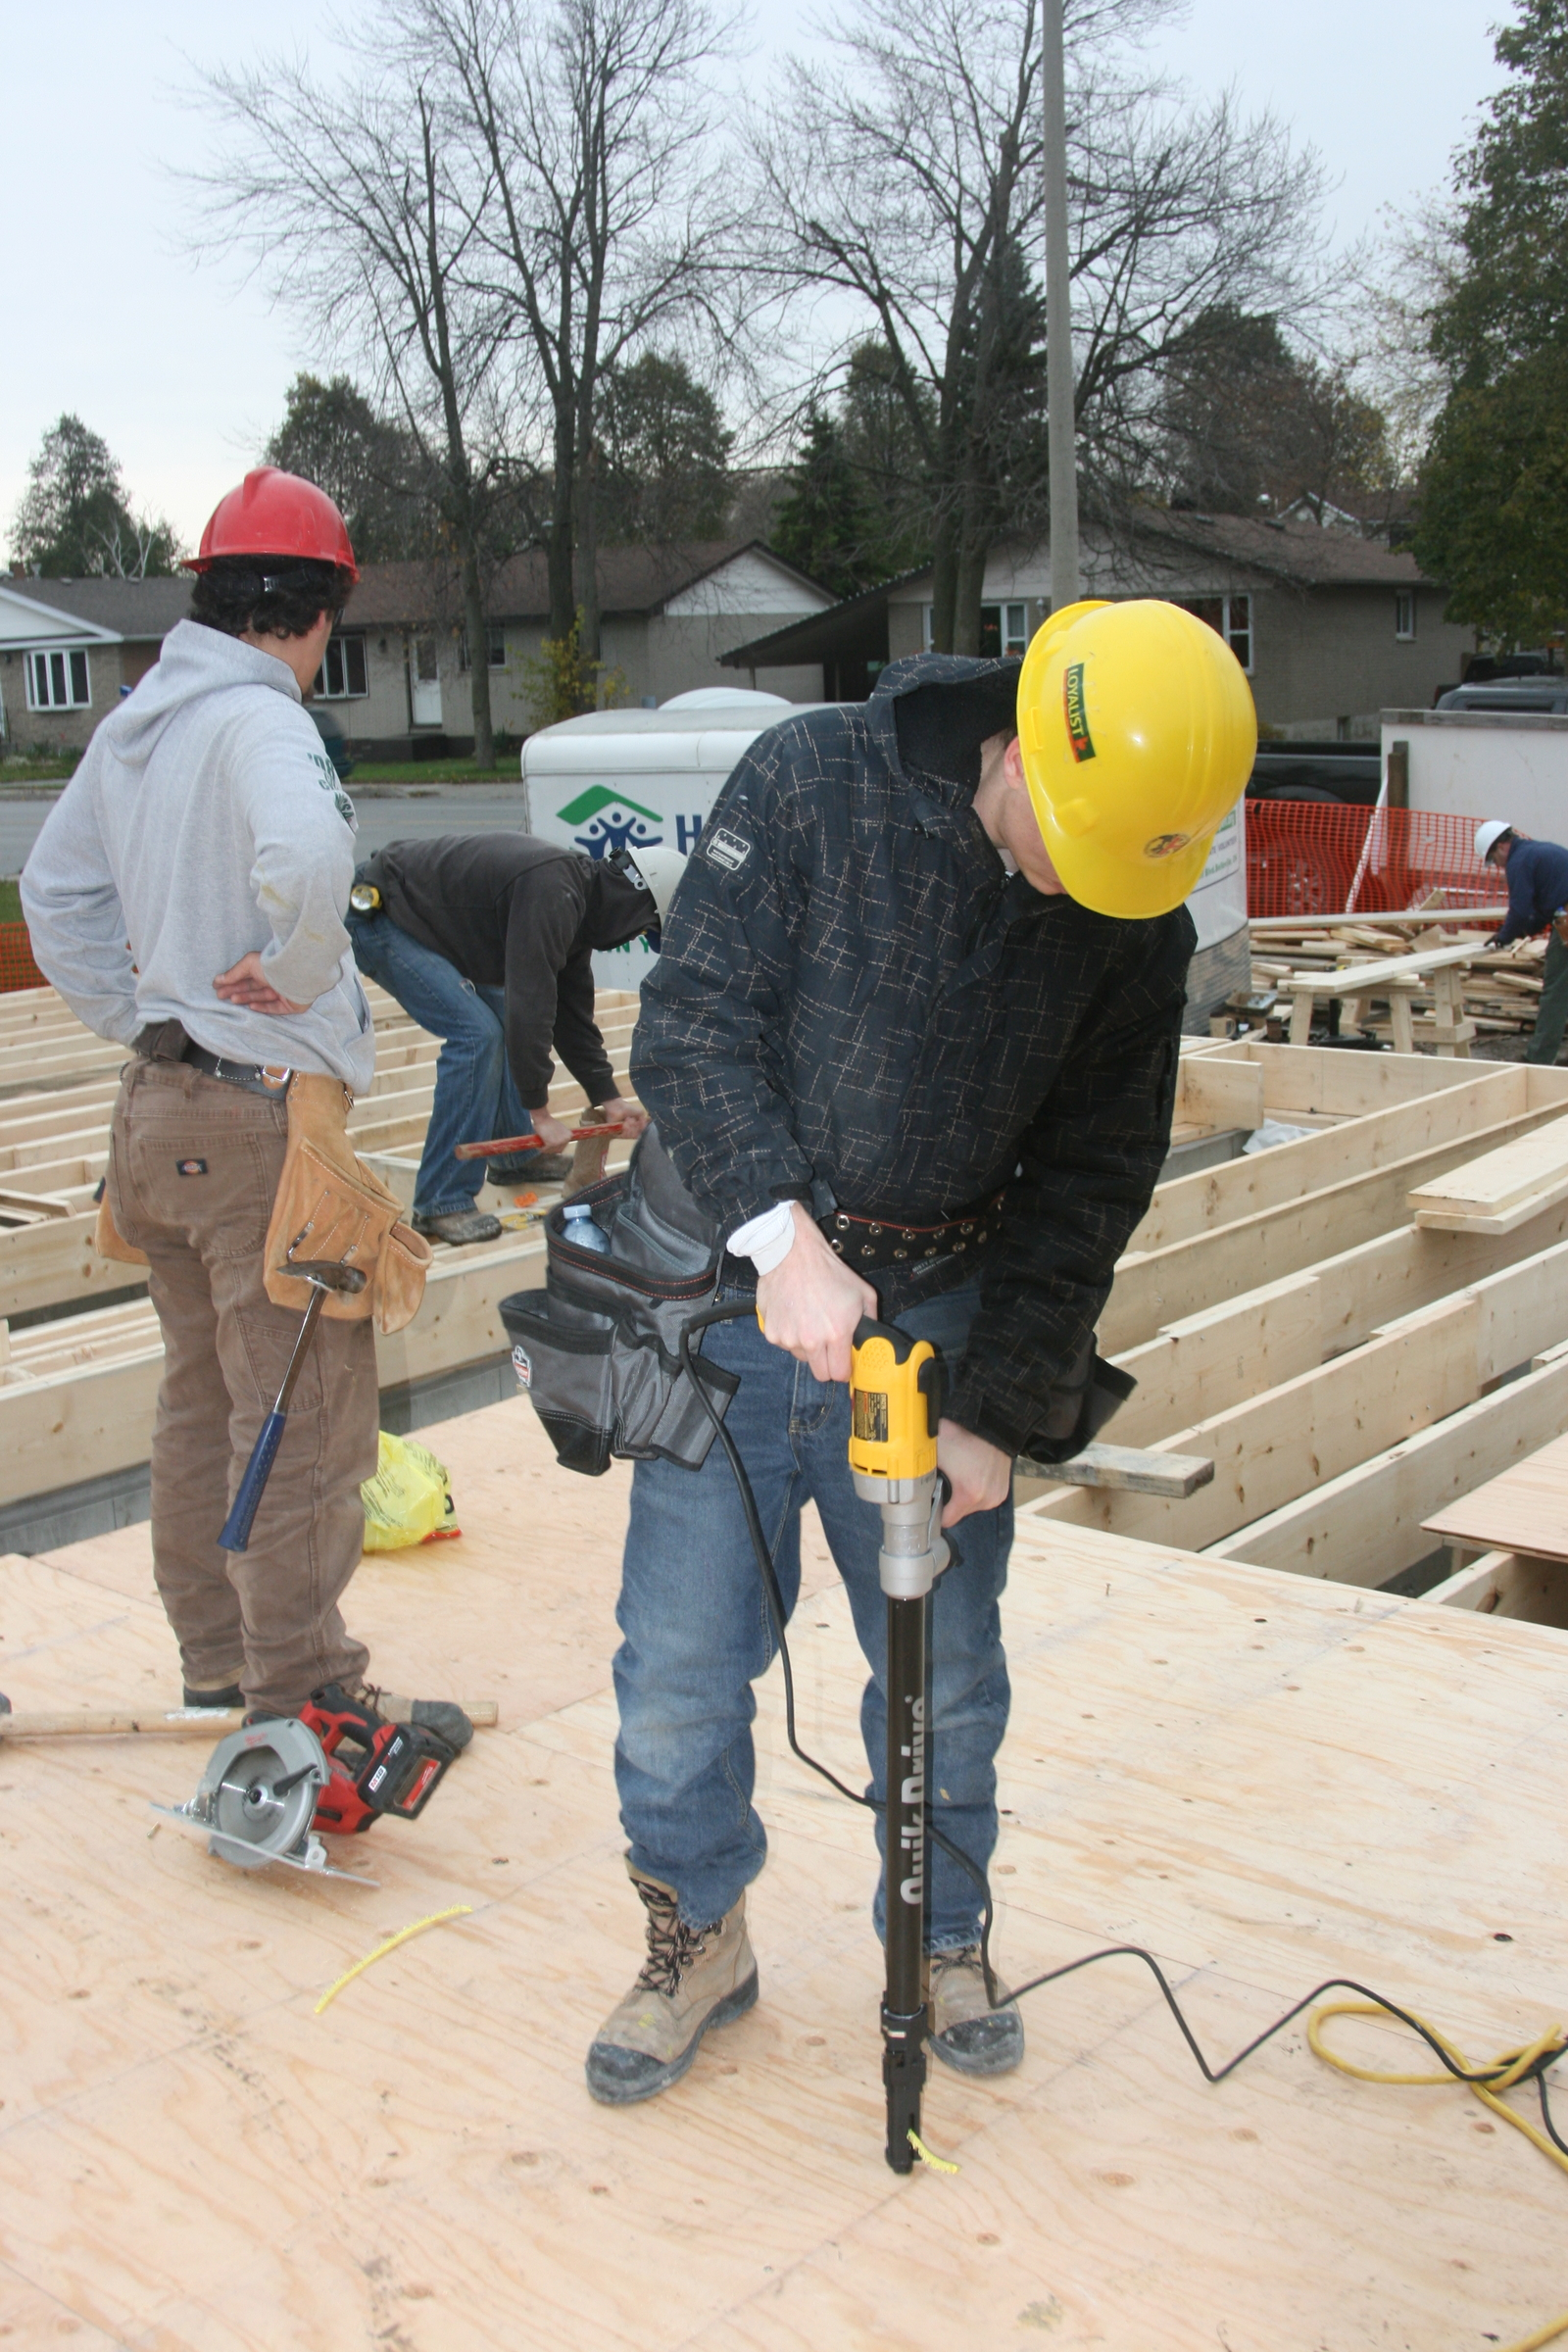 Three students in hardhats install a wooden floor in a home on a construction site.